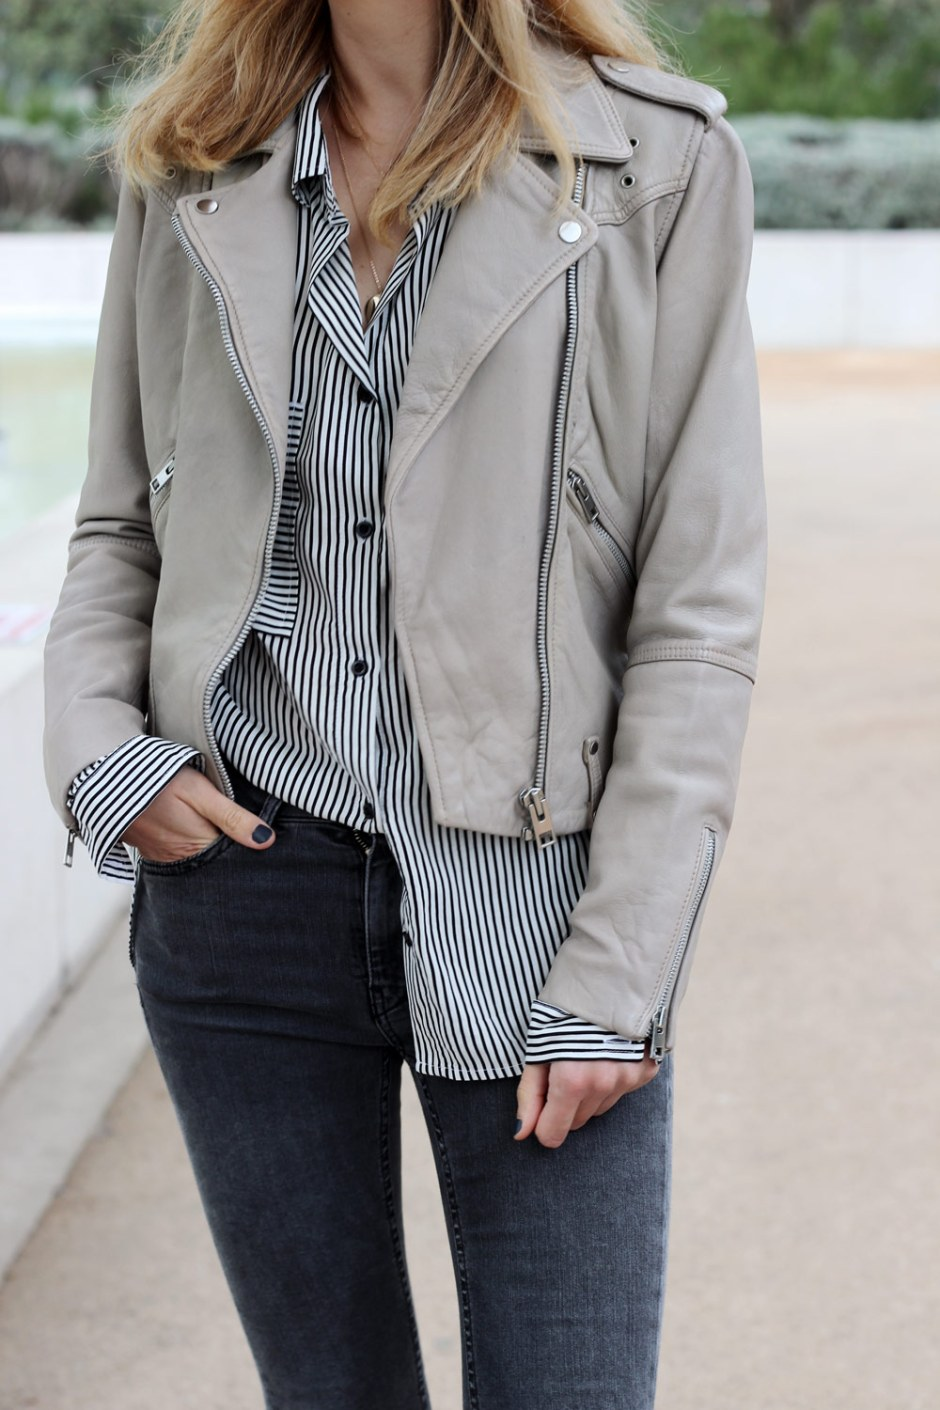 outfit-striped-shirt-breal-perfecto-mango